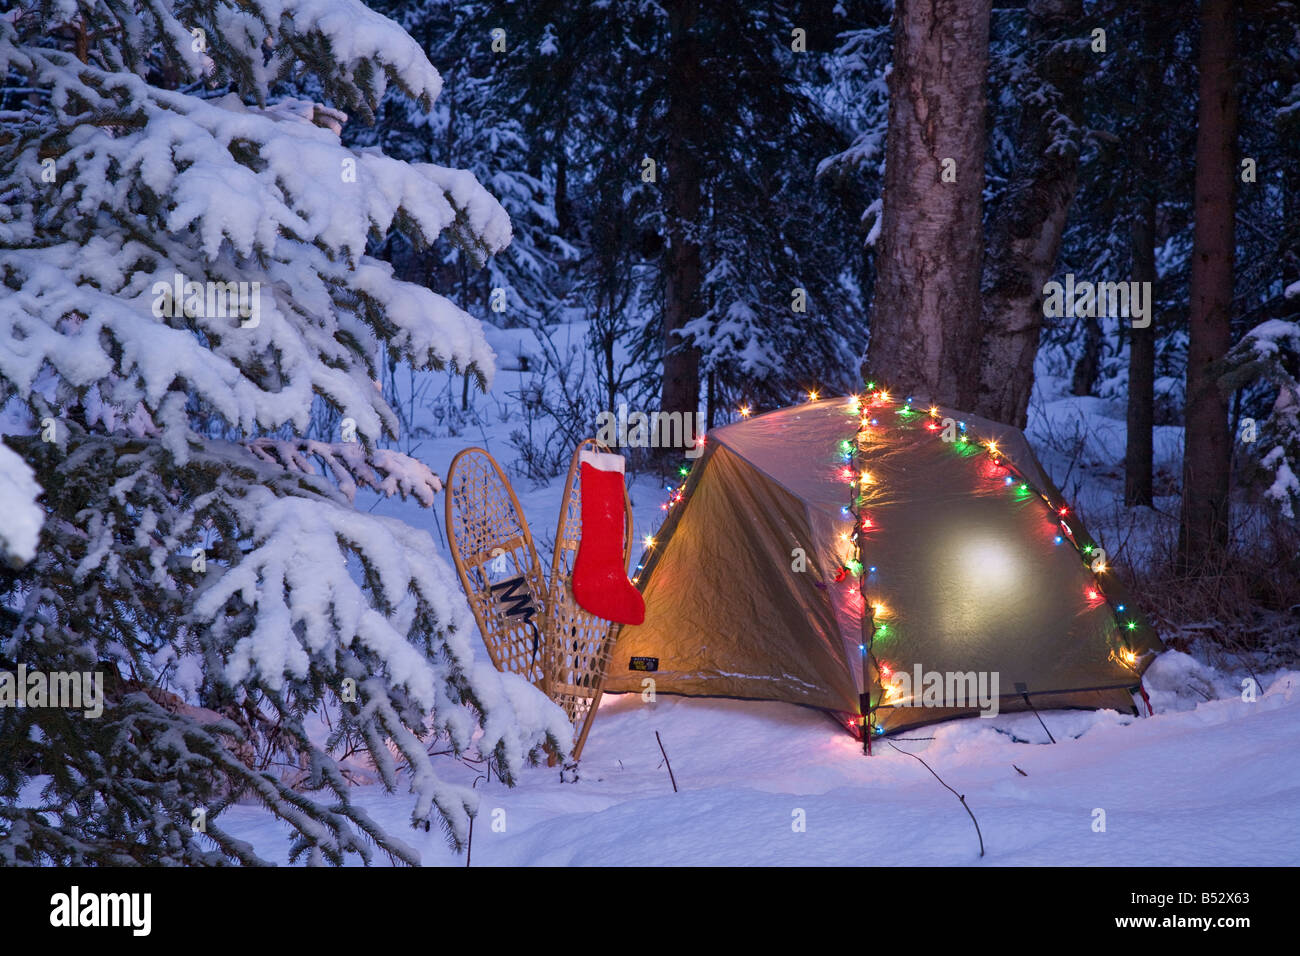 Christmas Lights For Camping.A Tent Is Set Up In The Woods With Christmas Lights And